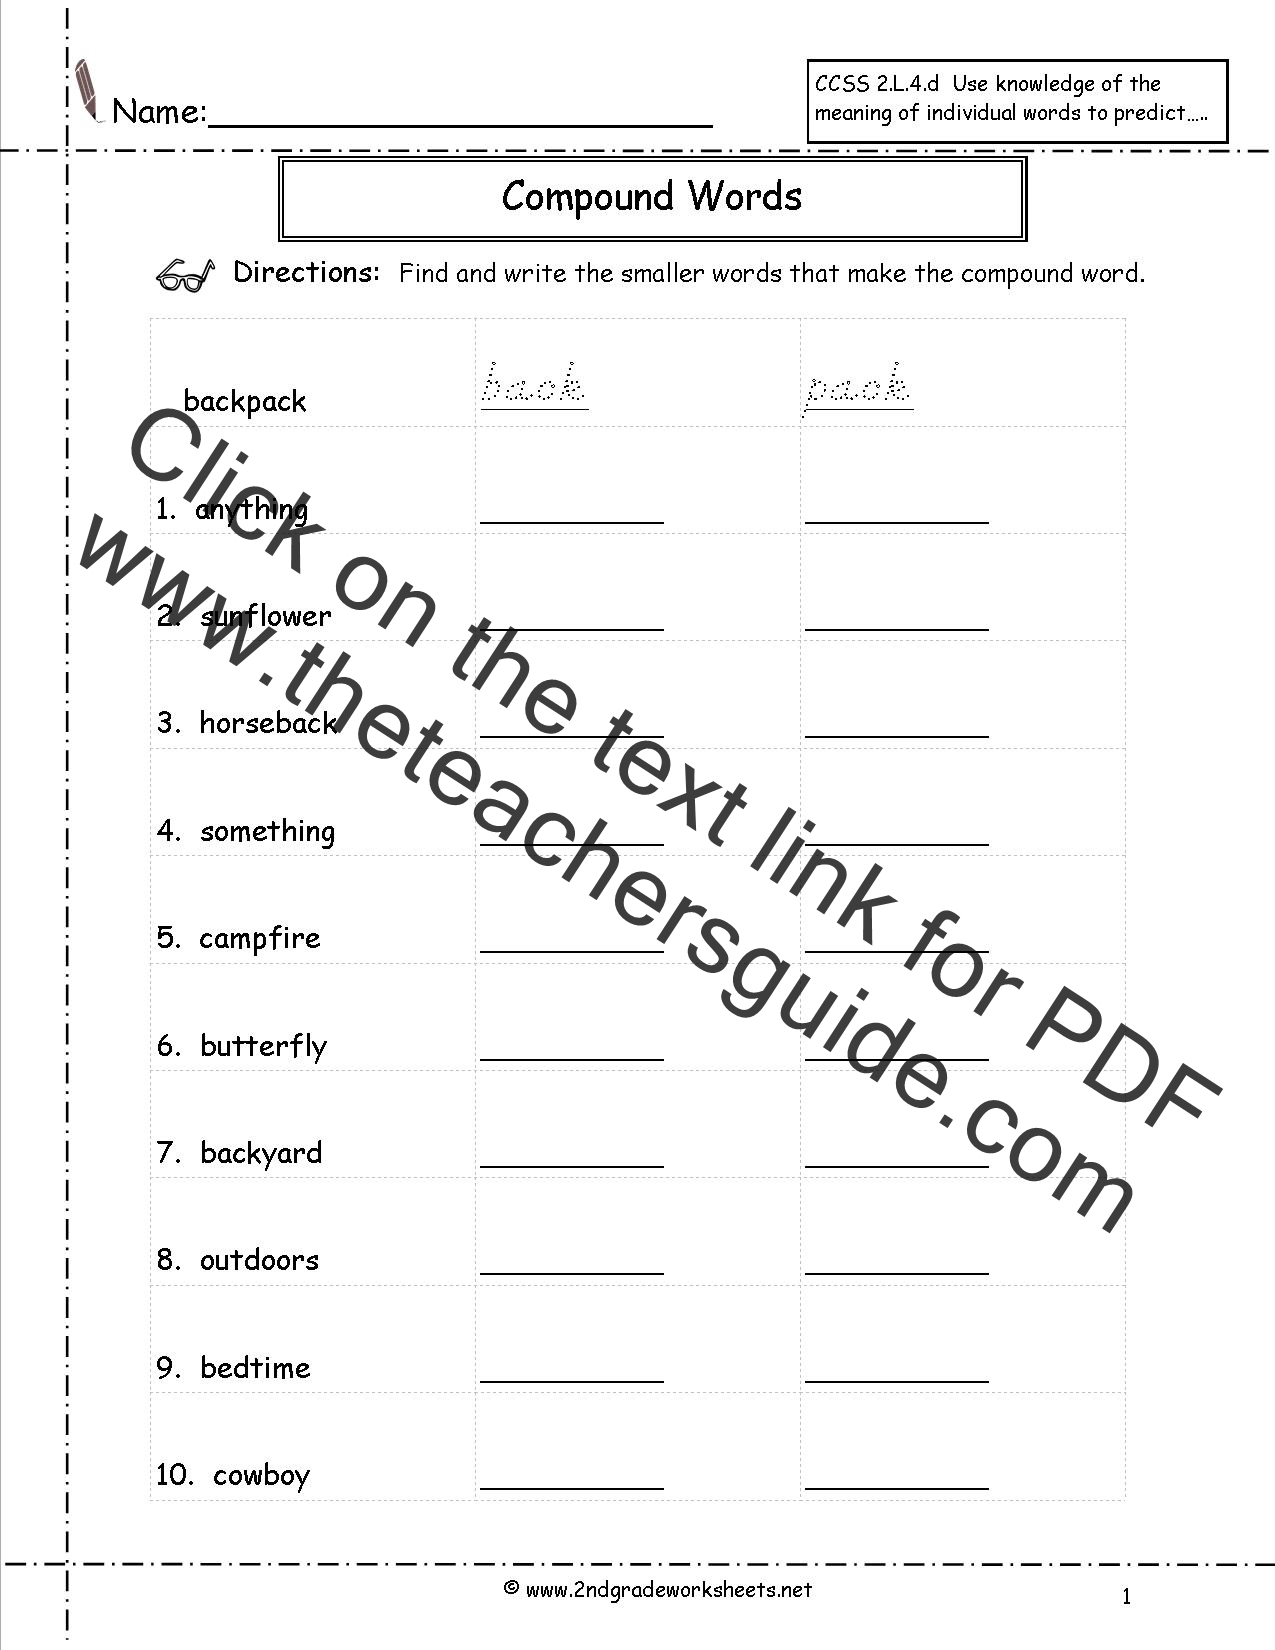 Worksheets Grade 4 Vocabulary Worksheets compound words worksheets worksheet